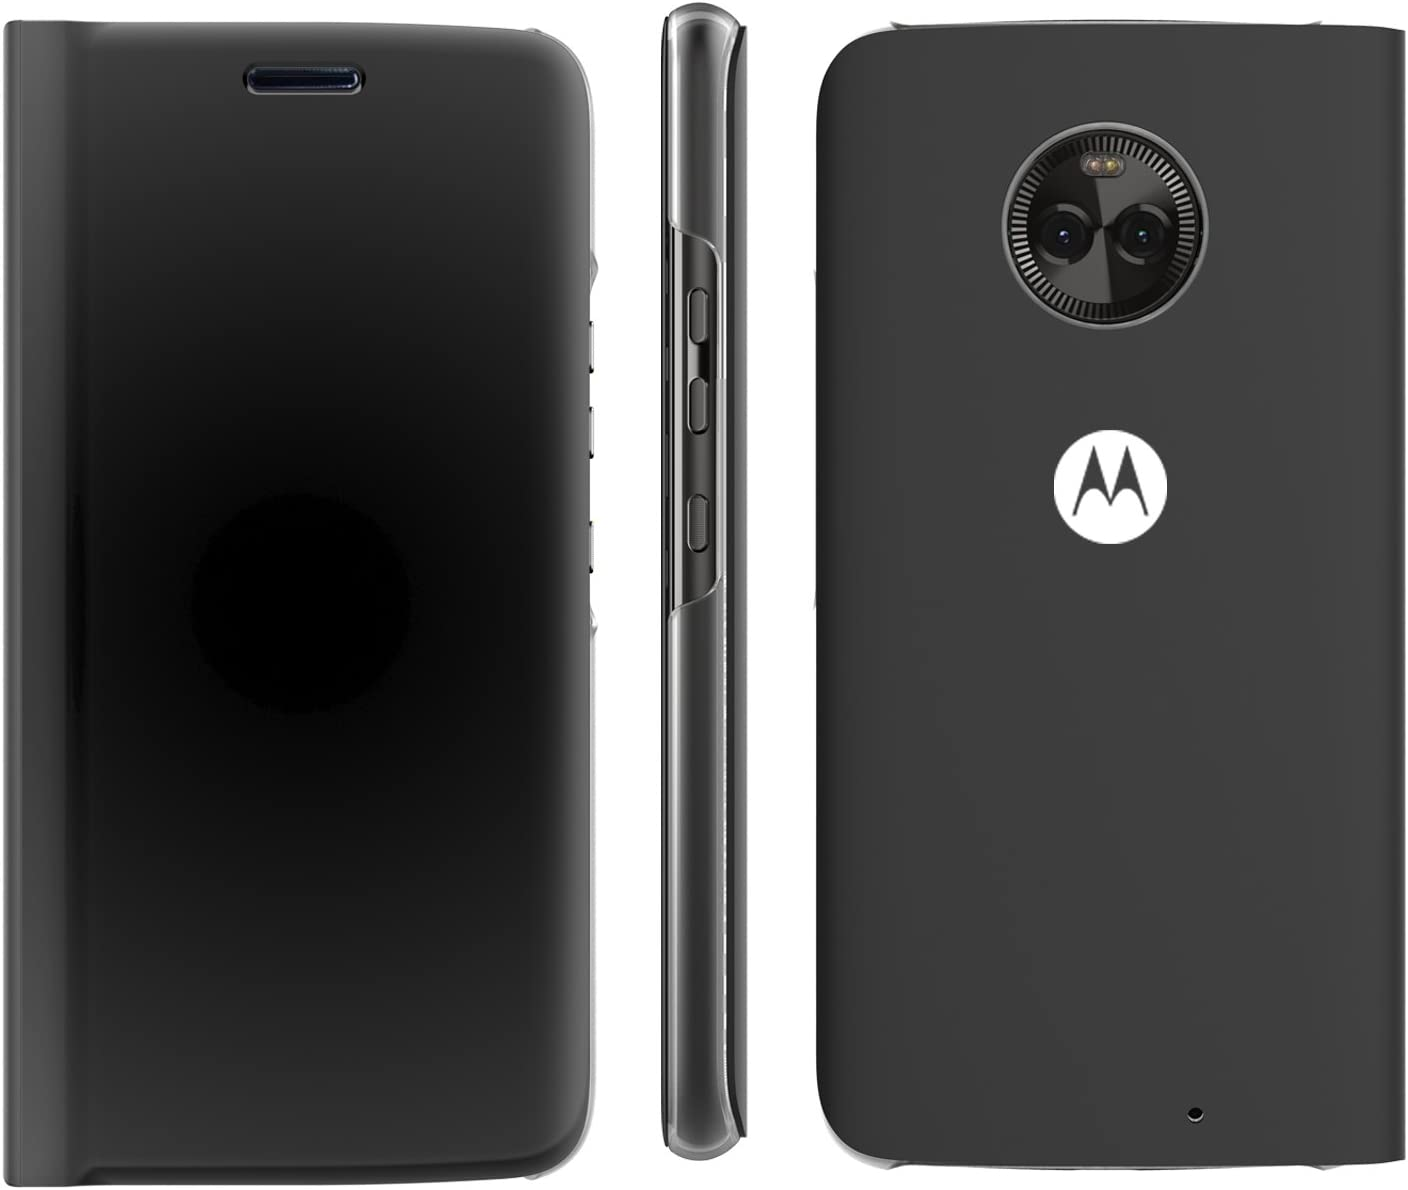 Lenovo Moto X4 Flip Case, Touch Flip Cover Transparent Shell Shock Resistant and Edge Protective Folio Flip Case for Motorola Moto X4 (Black)